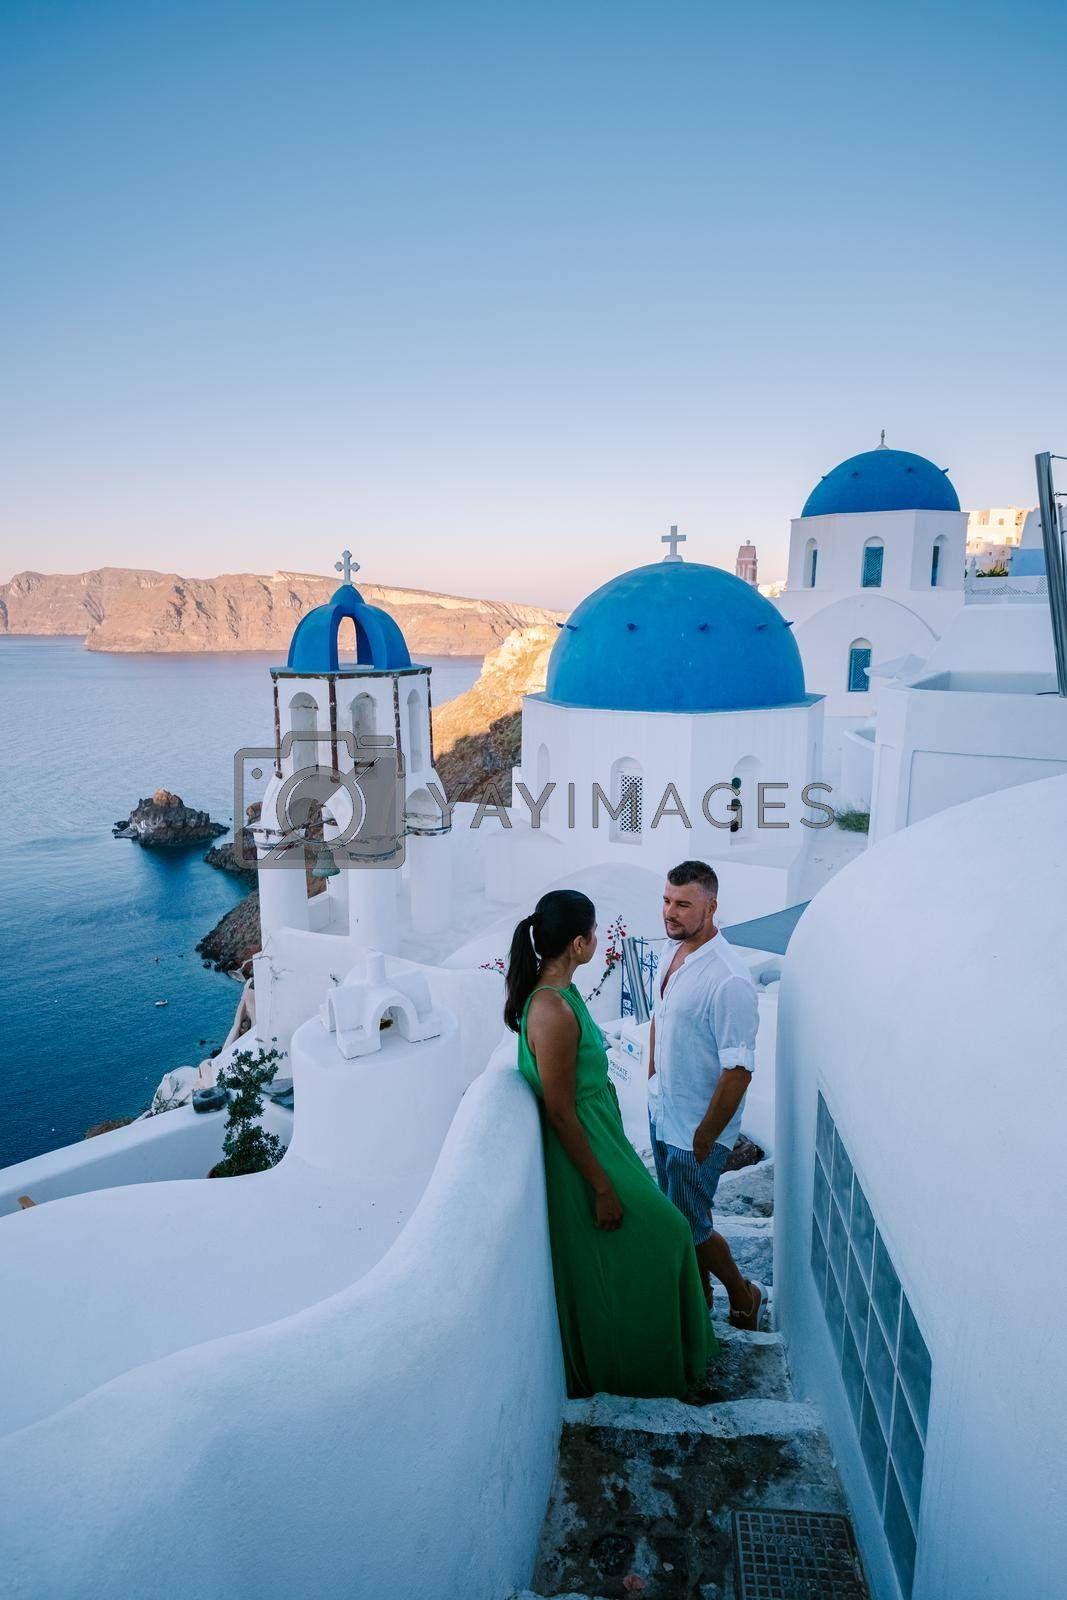 Royalty free image of Santorini Greece, young couple on luxury vacation at the Island of Santorini watching sunrise by the blue dome church and whitewashed village of Oia Santorini Greece during sunrise, men and woman on holiday in Greece by fokkebok